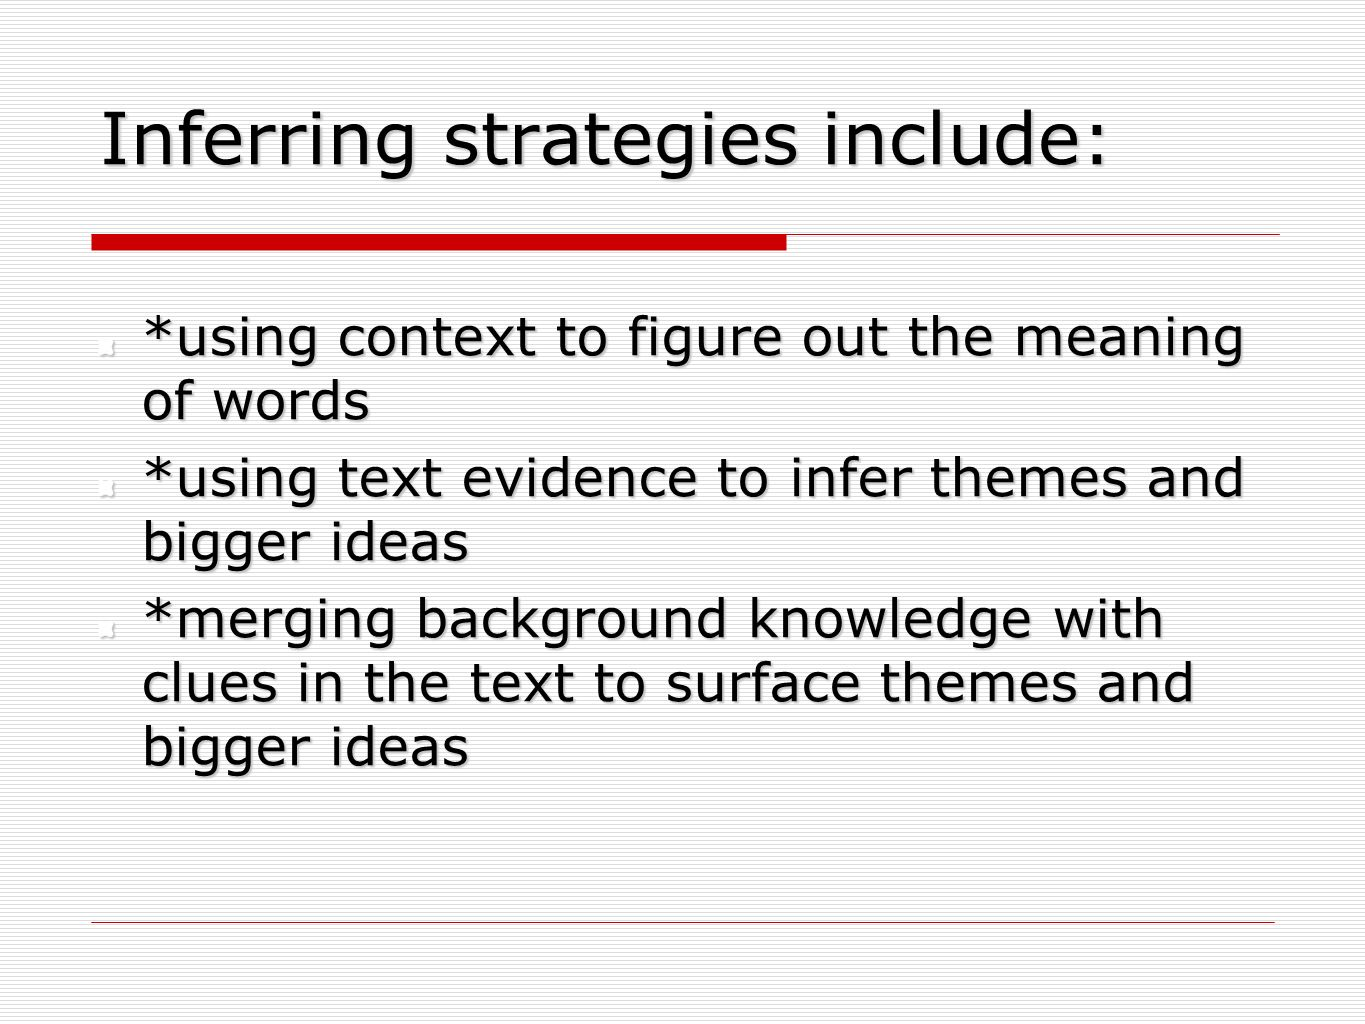 Inferring strategies include: